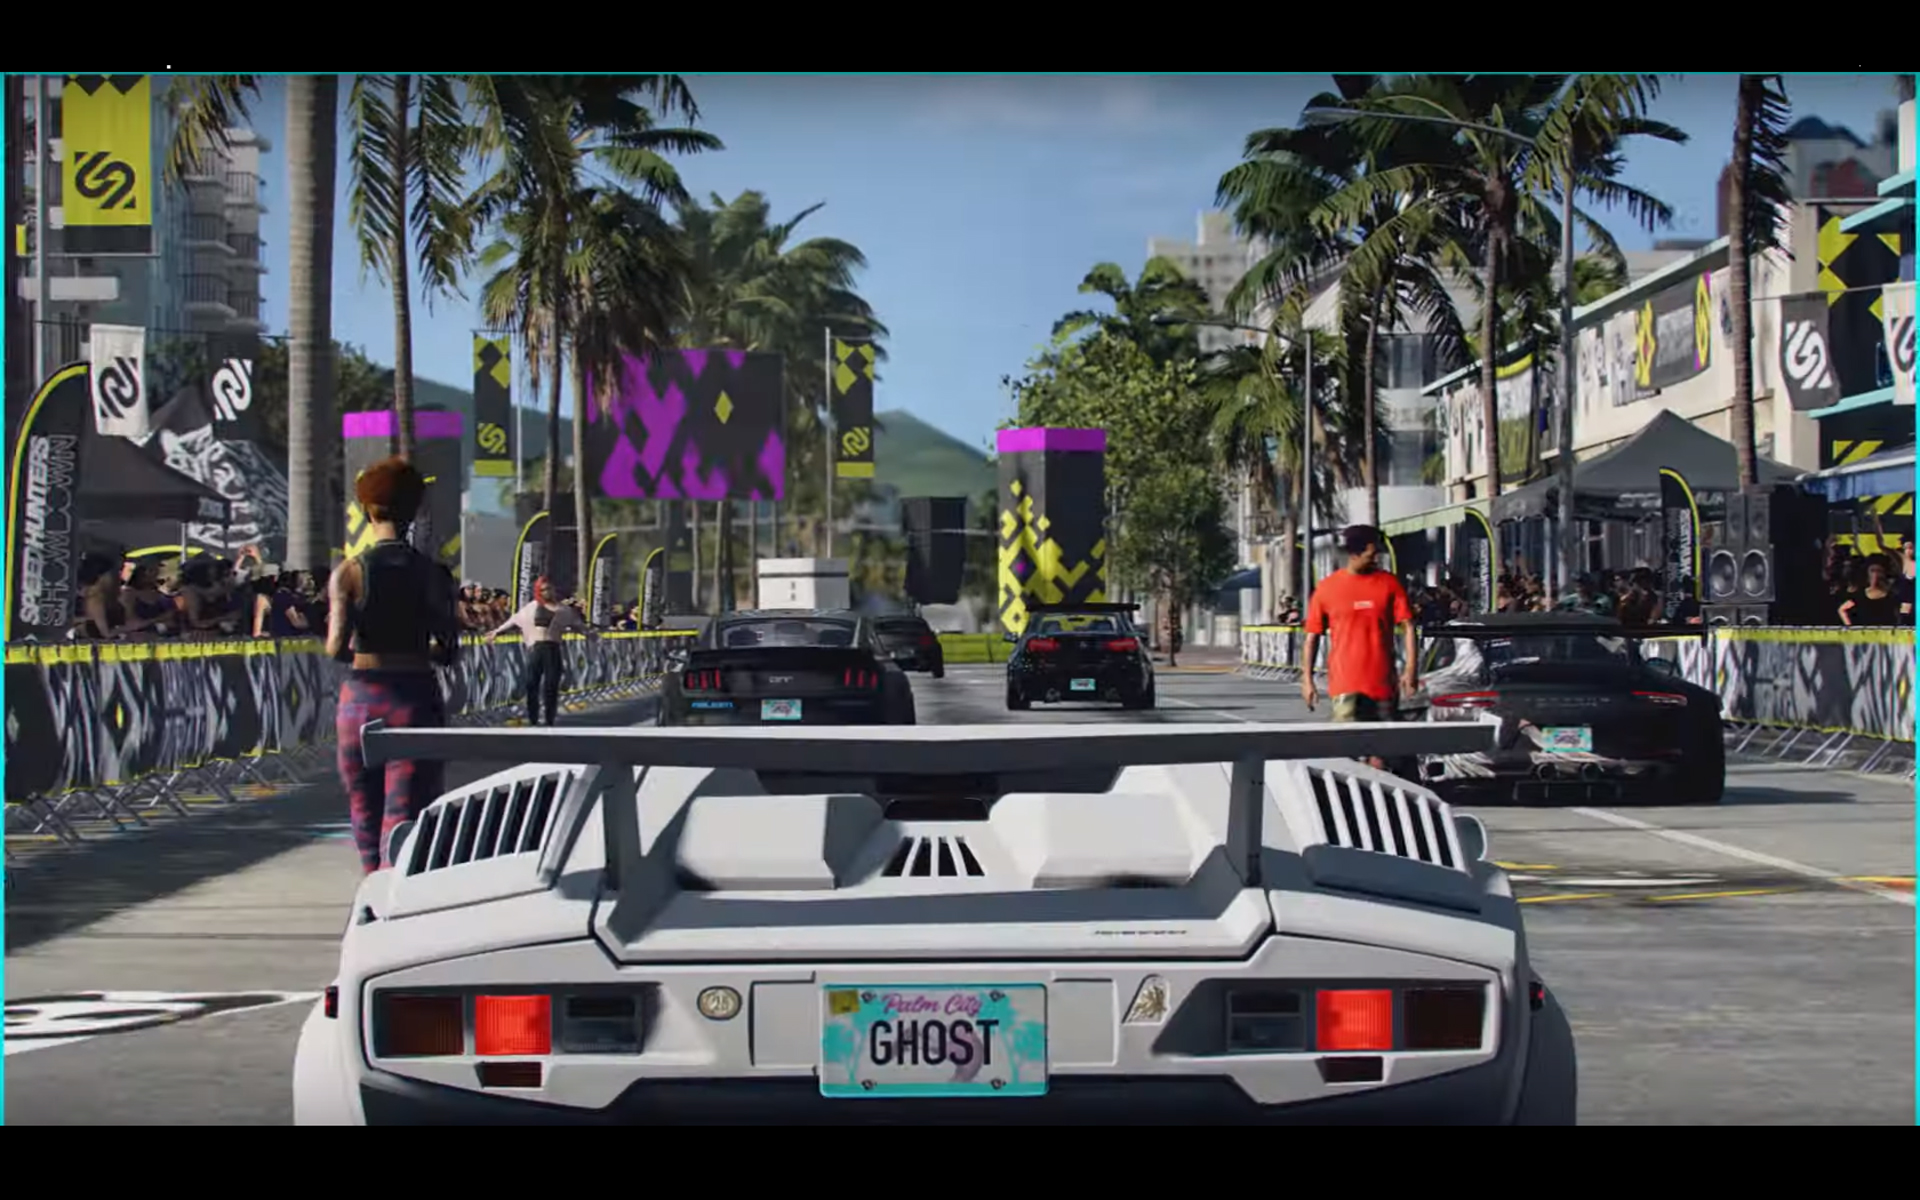 NFS-Heat-2019-screen-trailer-Lamborghini-rear-face-grid-start